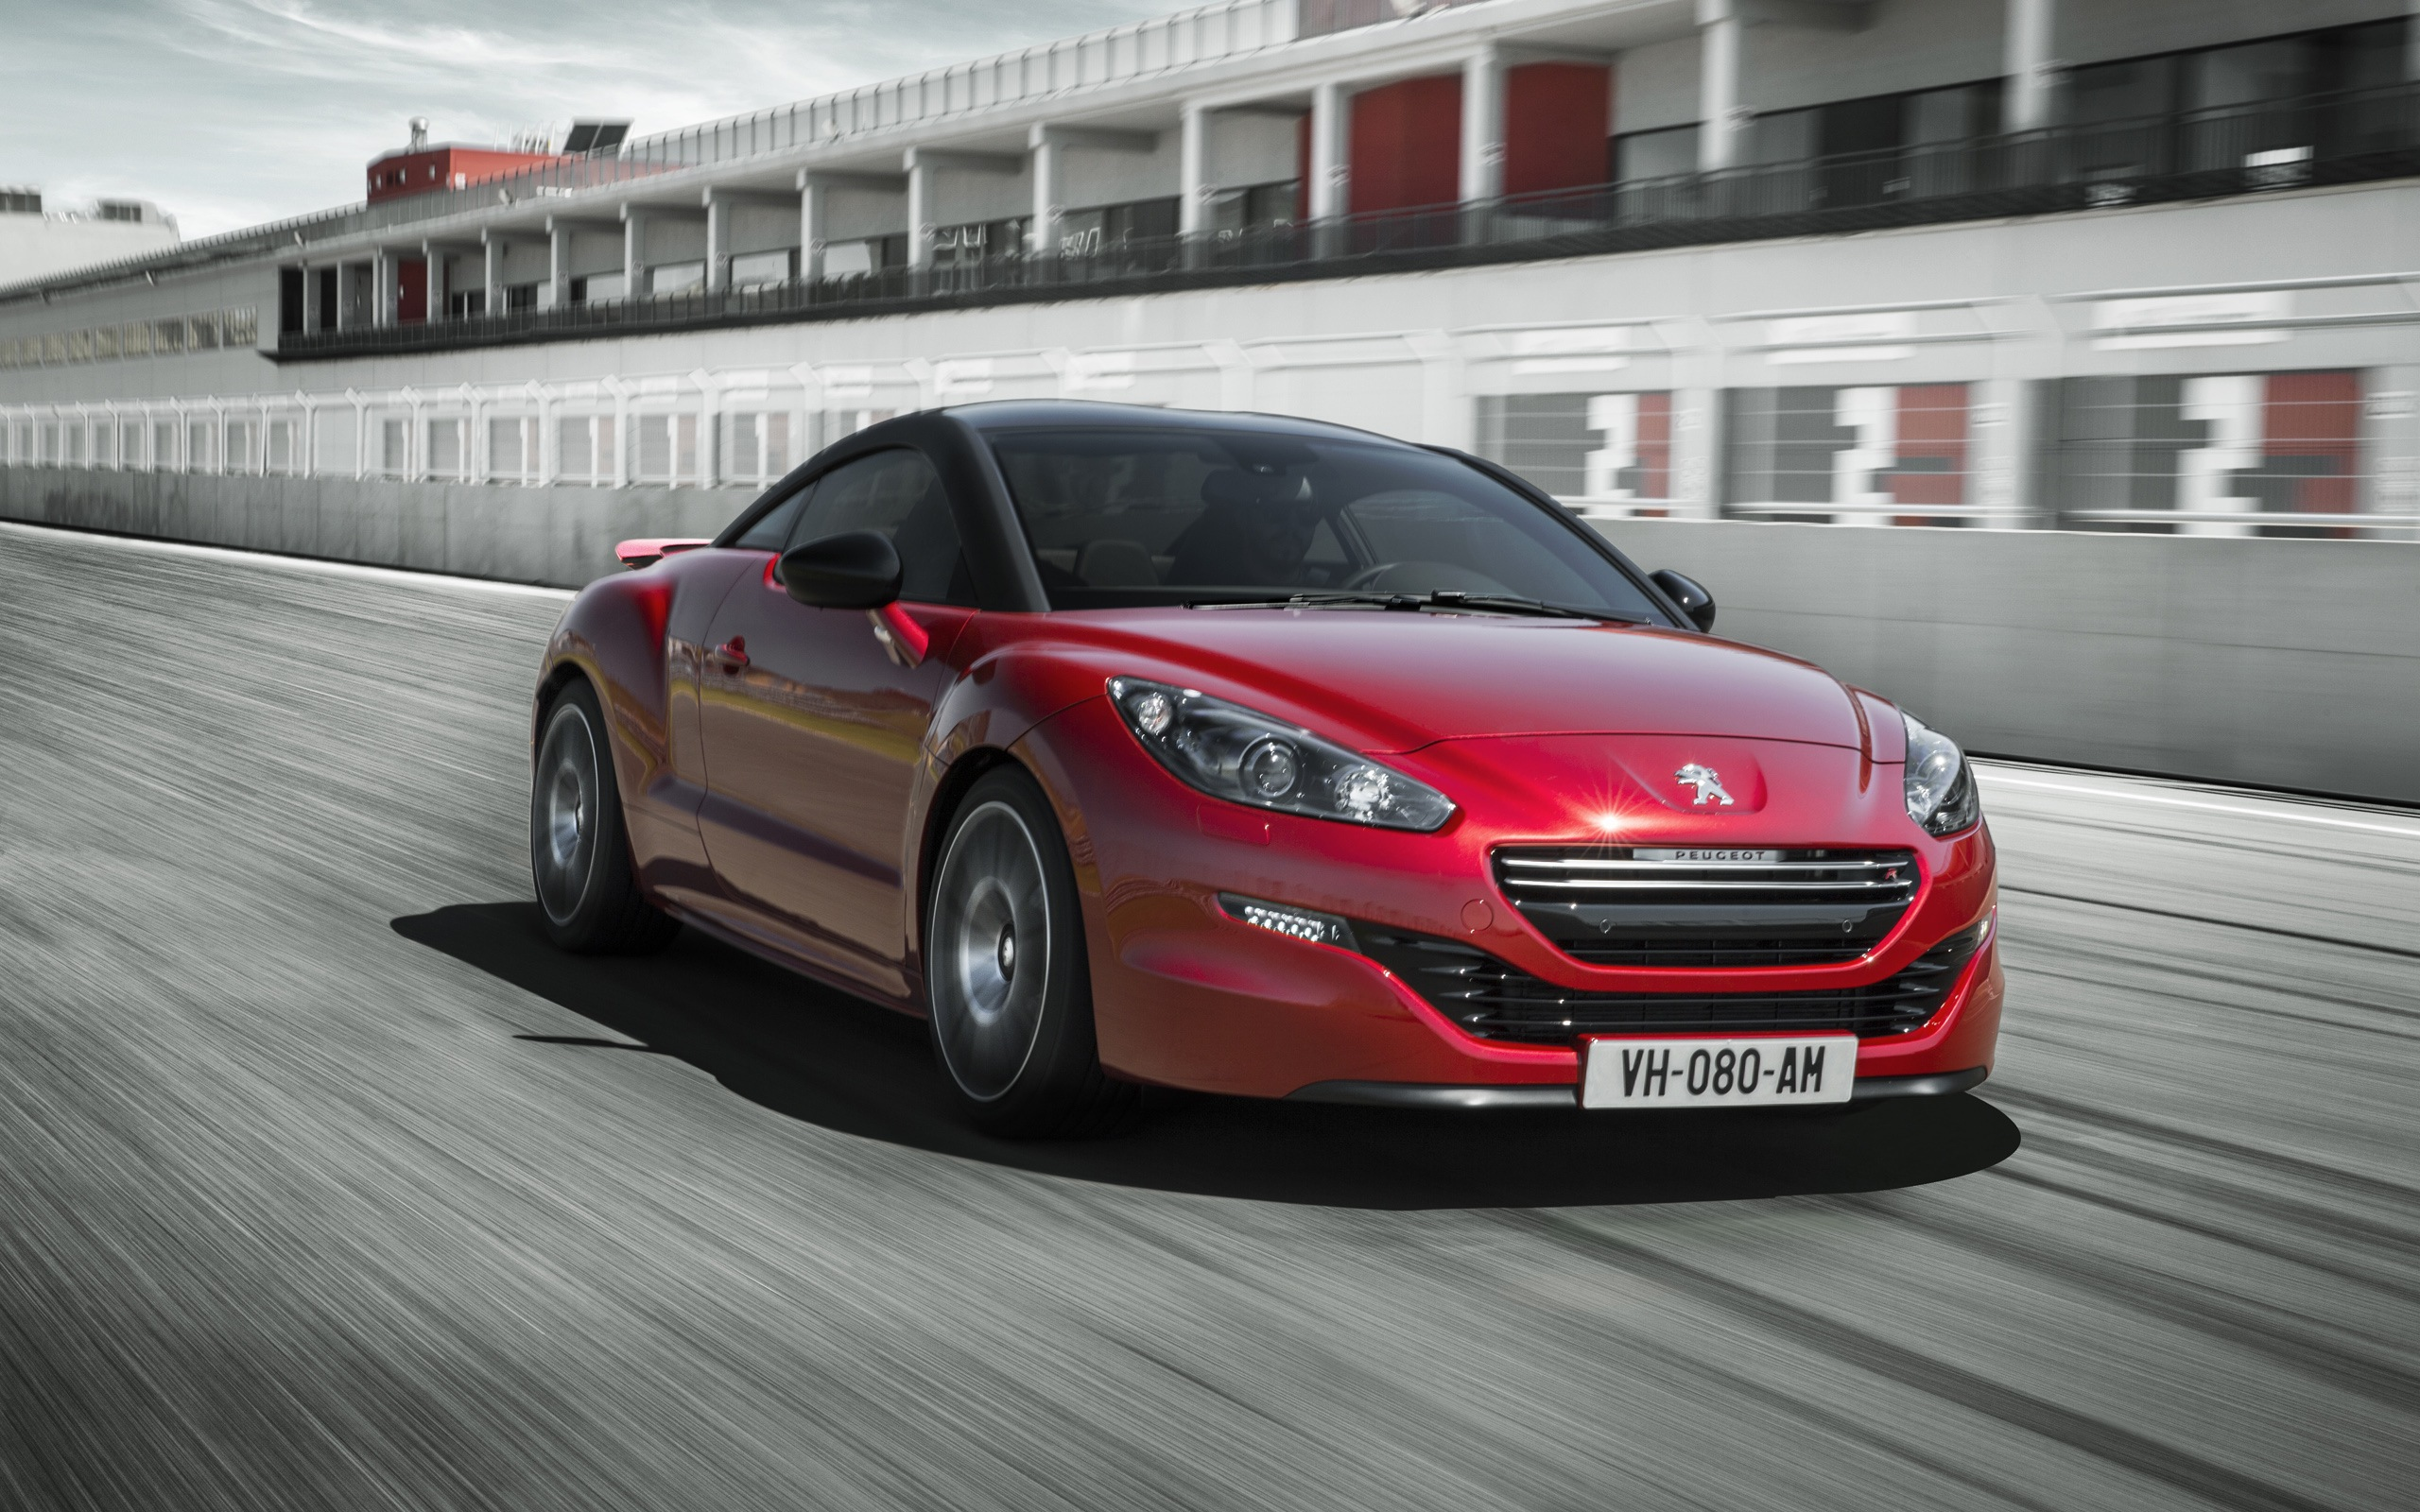 2014 peugeot rcz r voiture cran hd 30 2560x1600 fond d 39 cran t l charger 2014 peugeot rcz. Black Bedroom Furniture Sets. Home Design Ideas